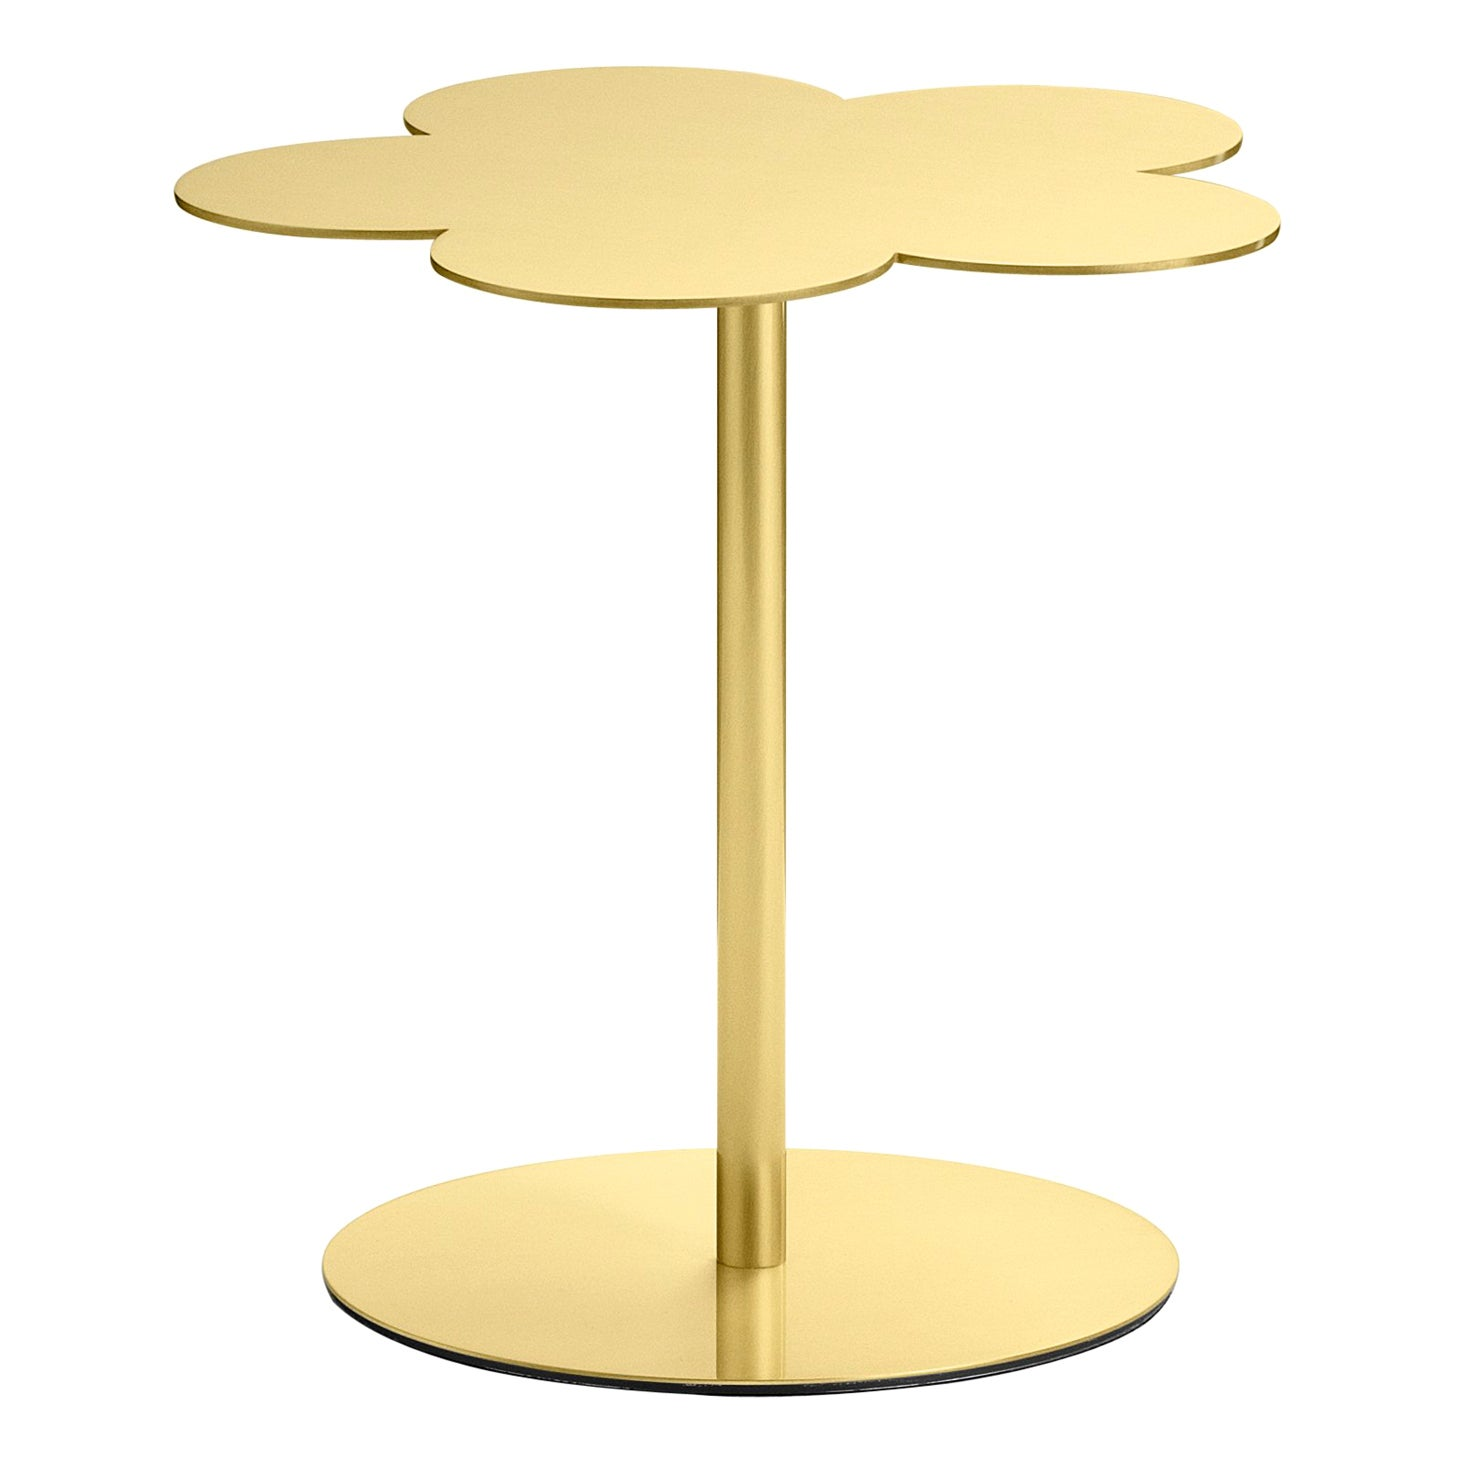 Ghidini 1961 Small Flowers Coffee Side Table in Brass by Stefano Giovannoni